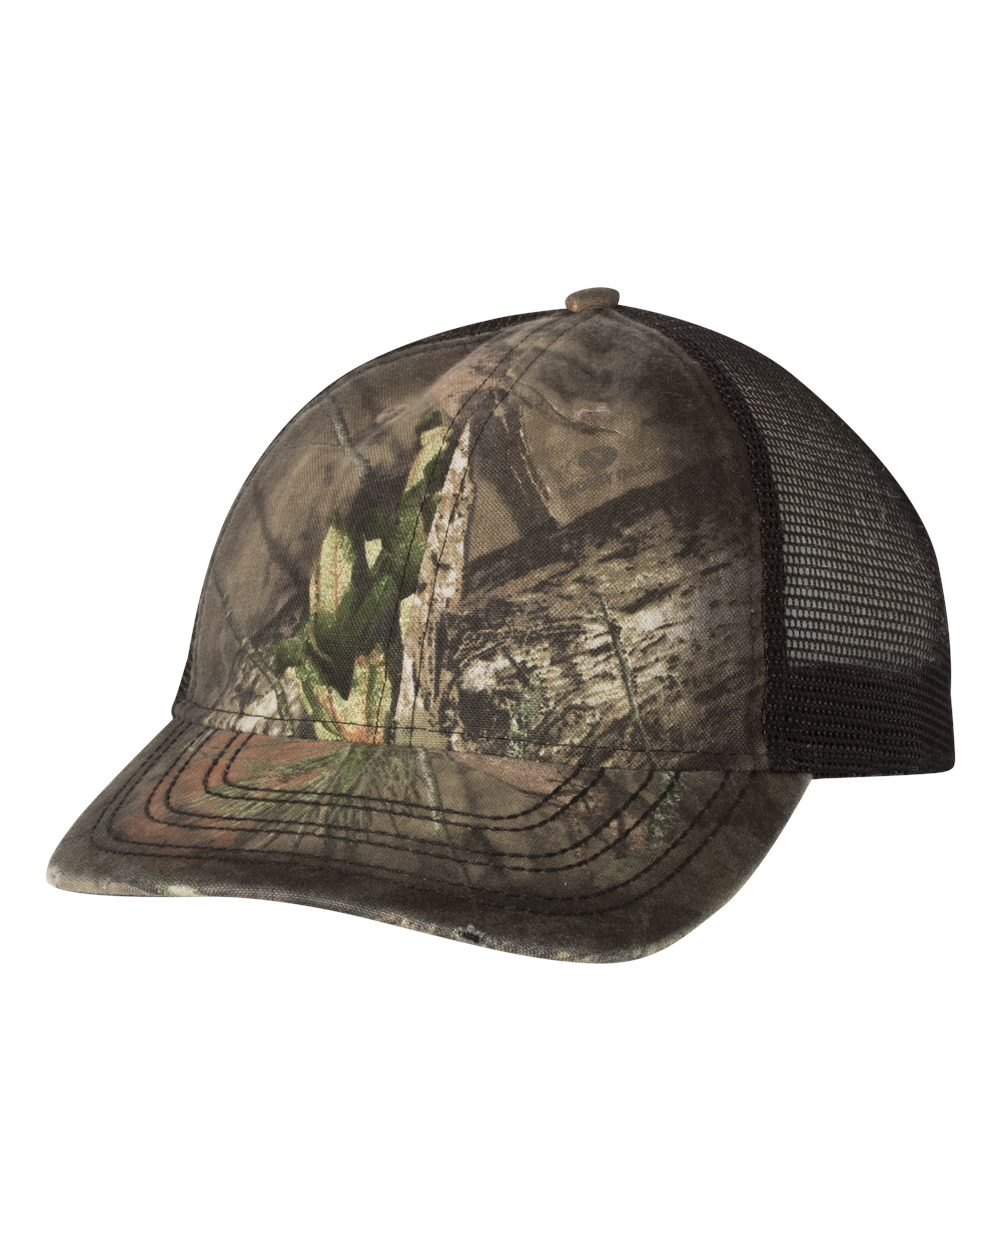 Outdoor Cap OSC100M - Oil Stained Camo Trucker Cap